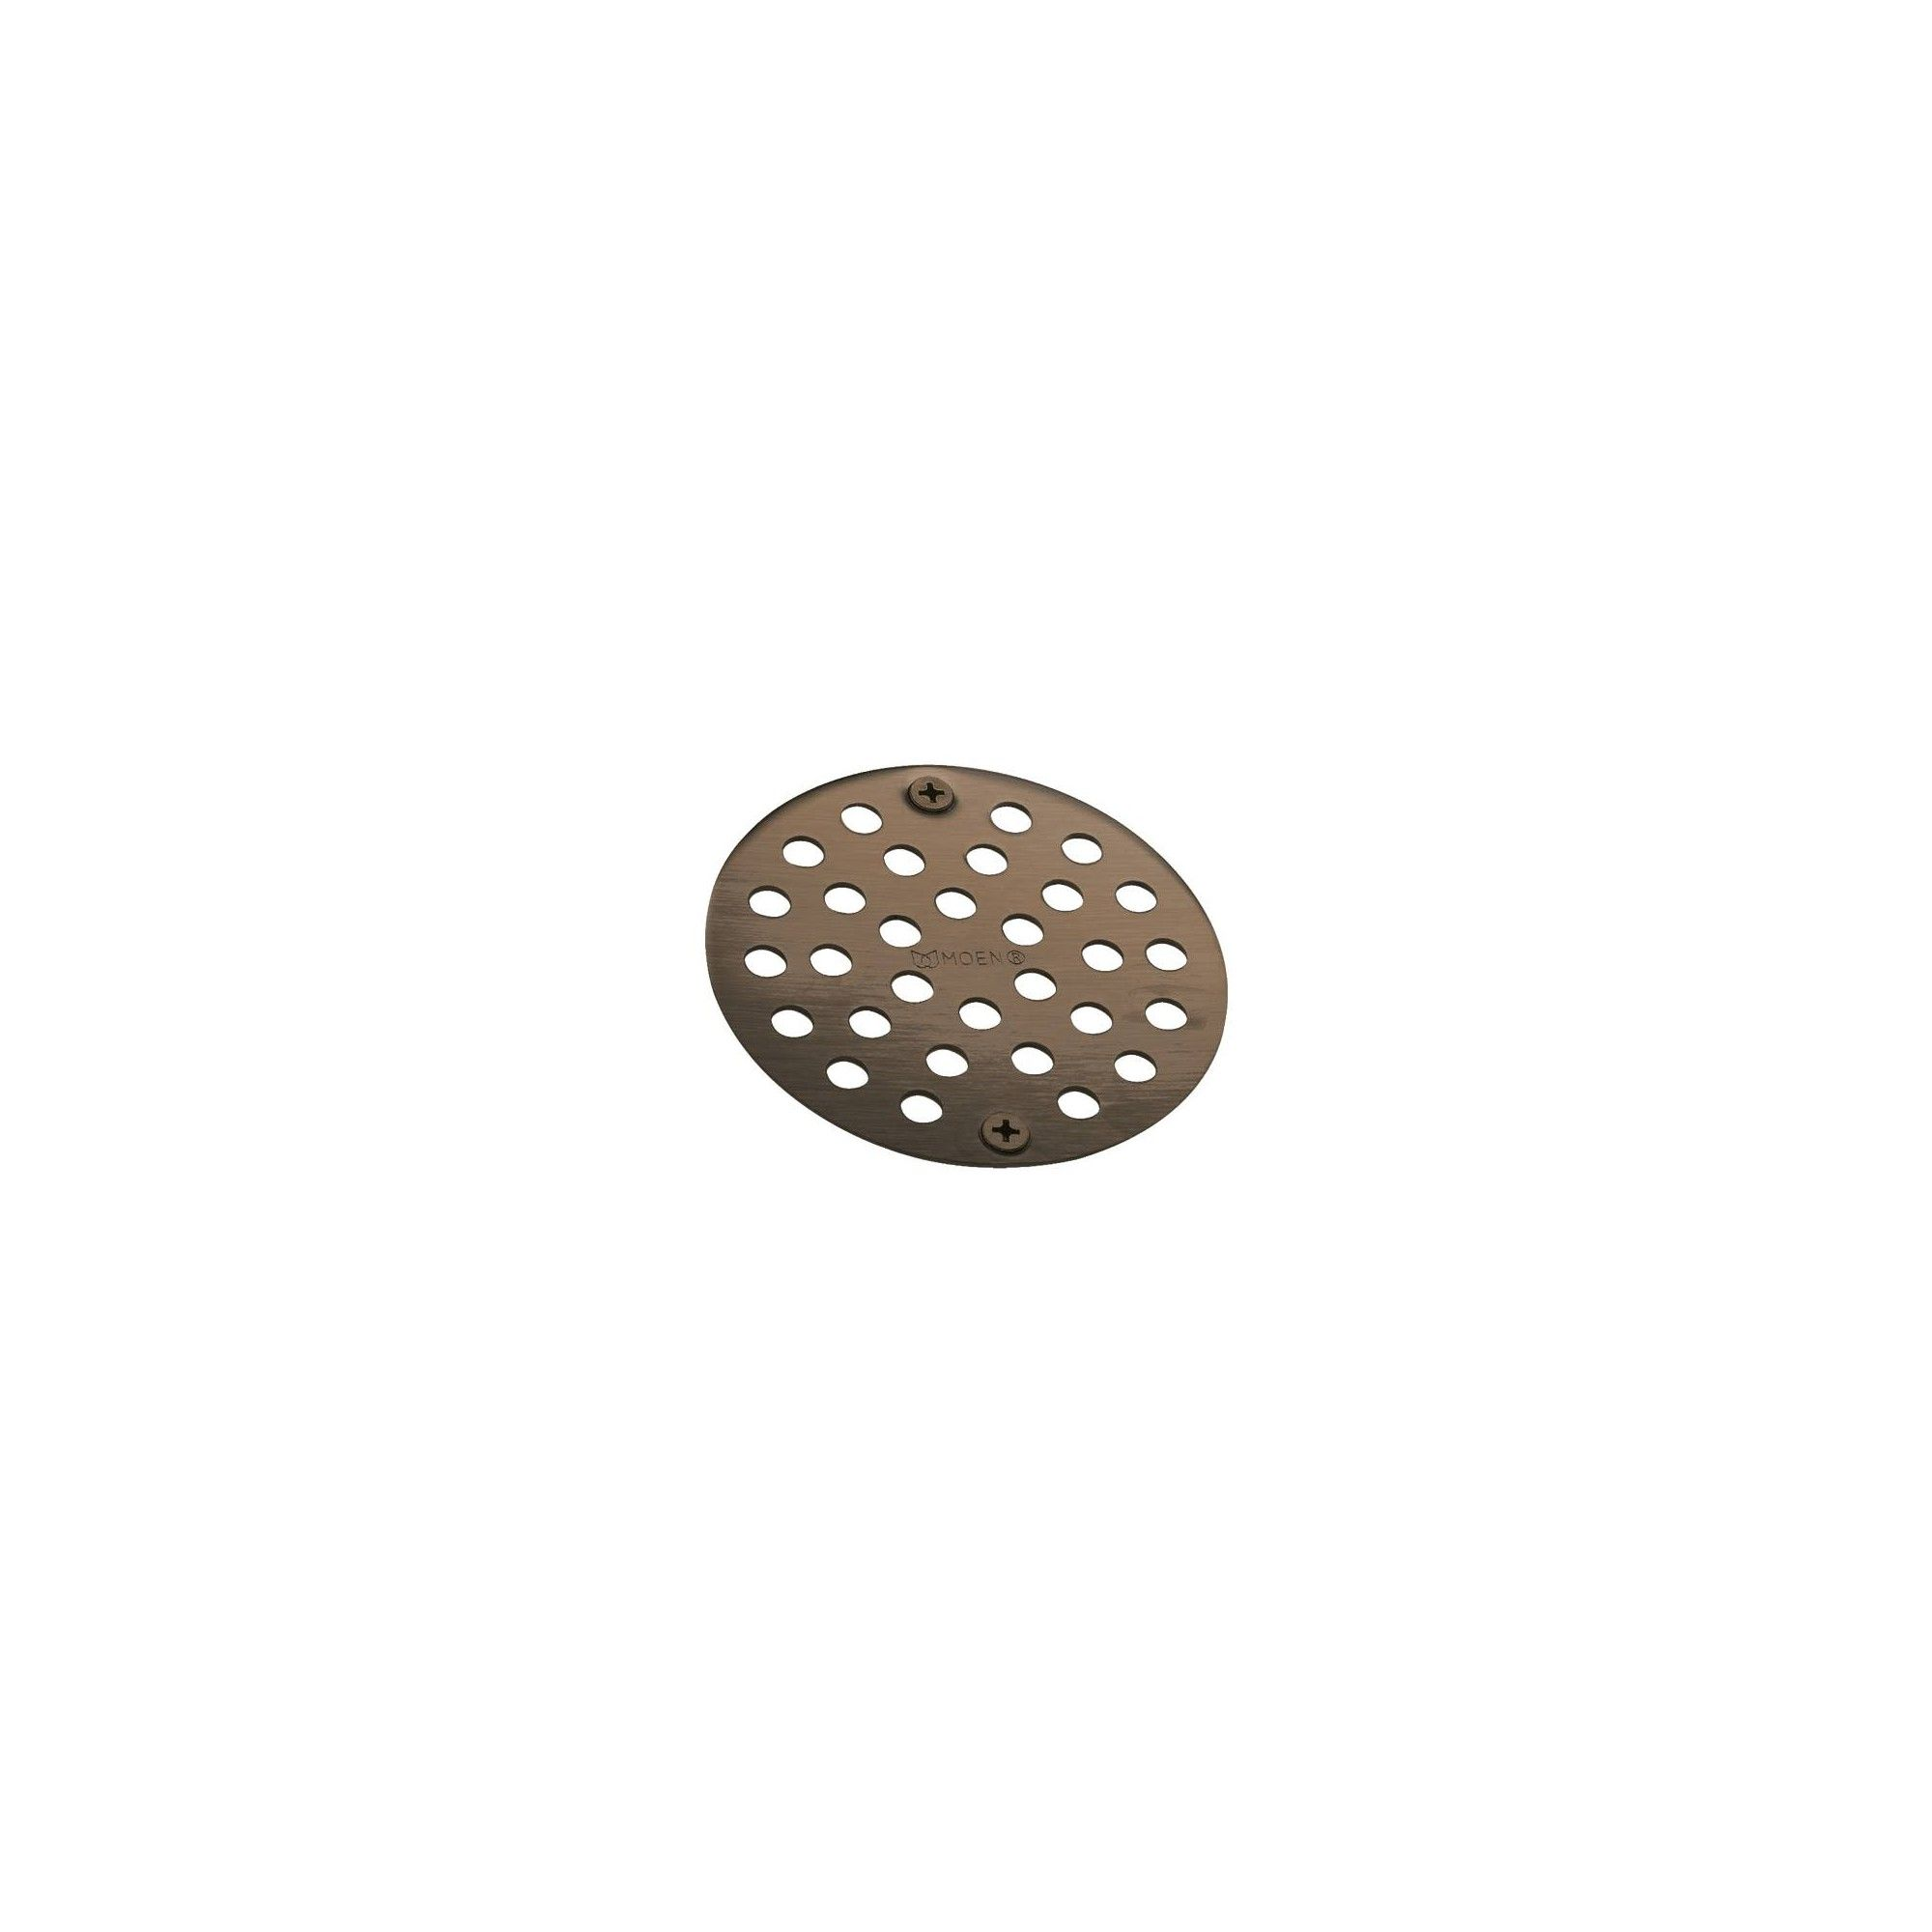 Moen 102763 4 Round Shower Drain Cover With Exposed Screw